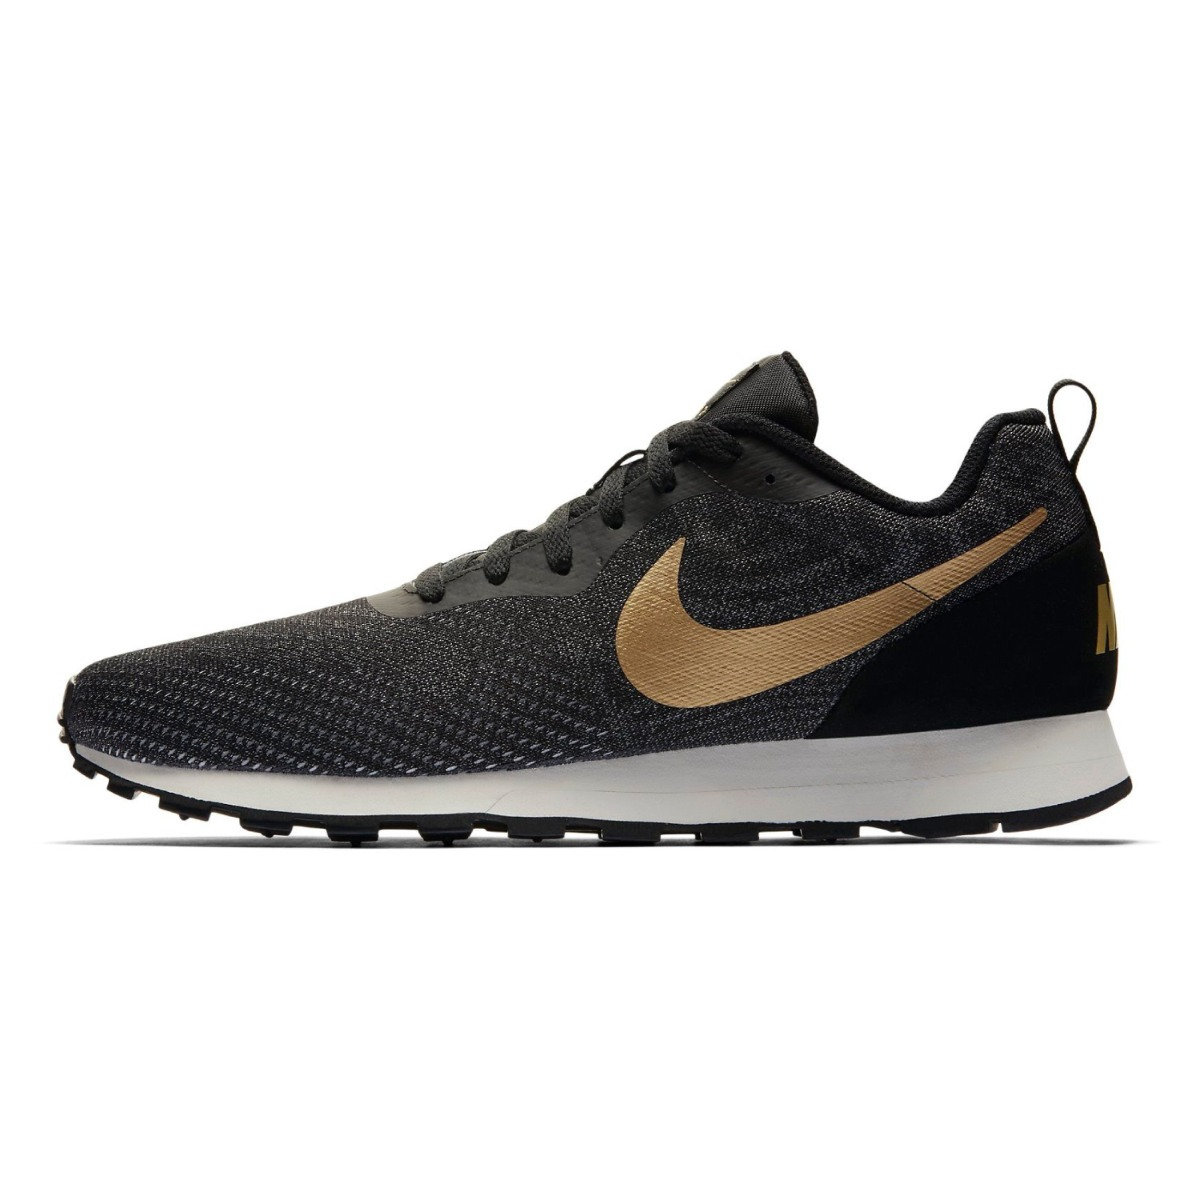 a8f02a9ed42 tenis nike md runner 2 eng mesh originales hombre 916774 011. Cargando zoom.